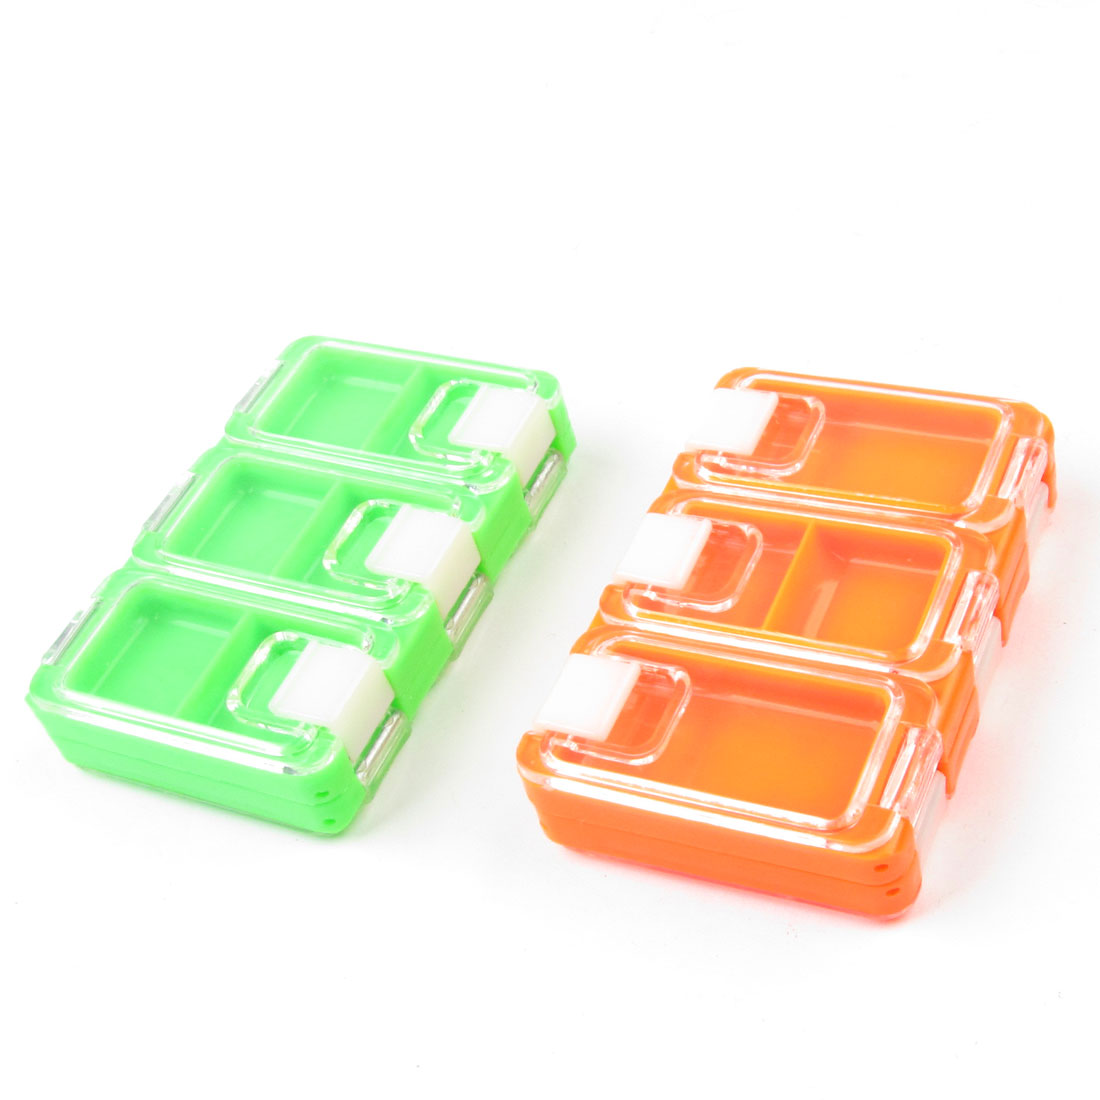 2 Pcs Orangered Green 10 Compartments Lure Hook Fishing Tackle Box